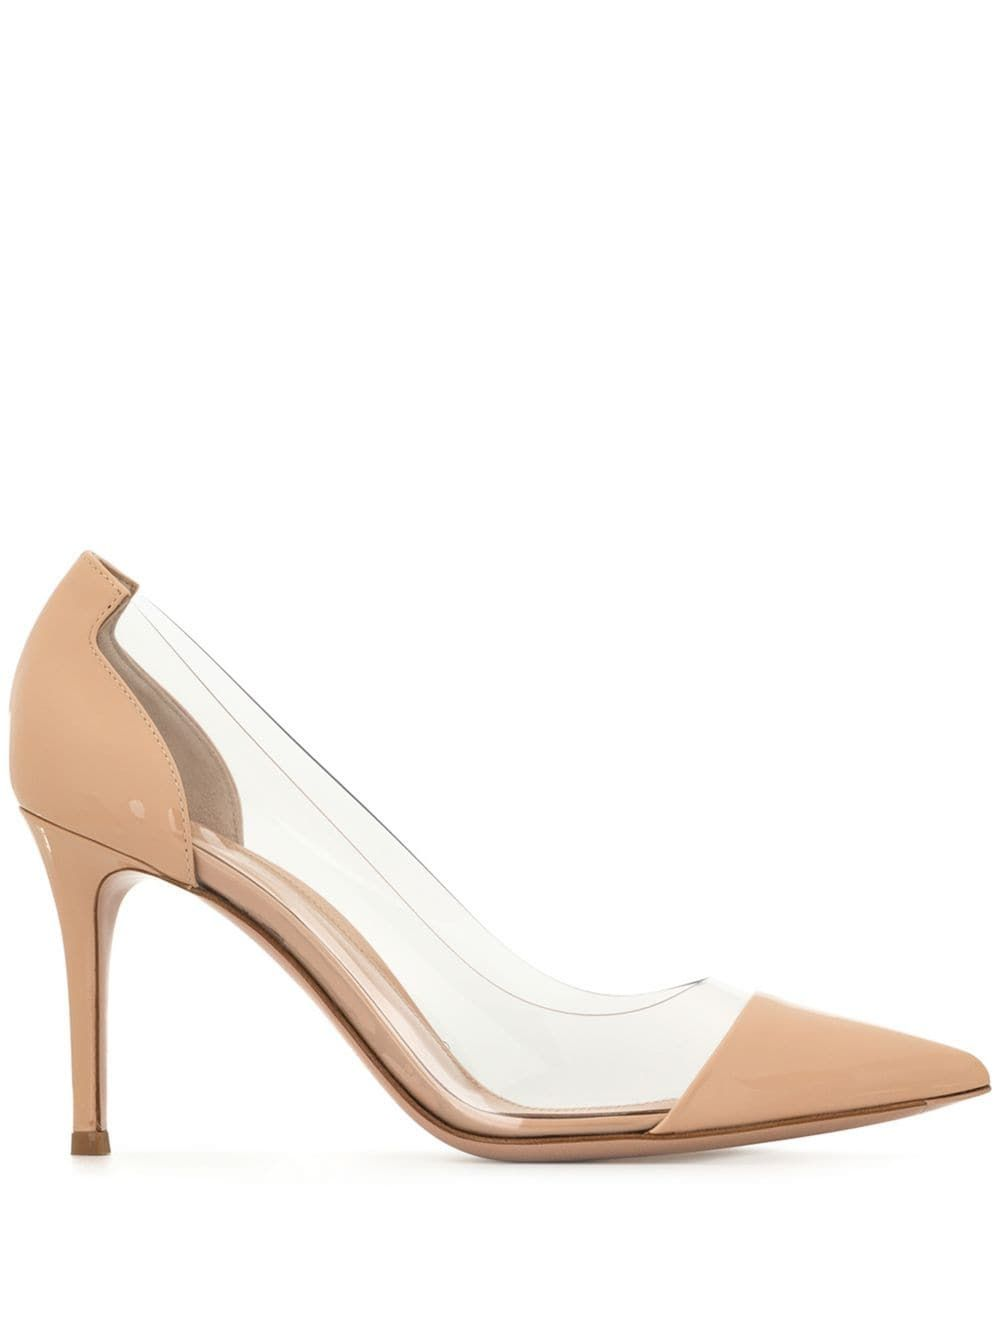 Gianvito Rossi Pointed Clear Pumps Farfetch In 2020 Stiletto Heels Butterfly Shoes Pumps